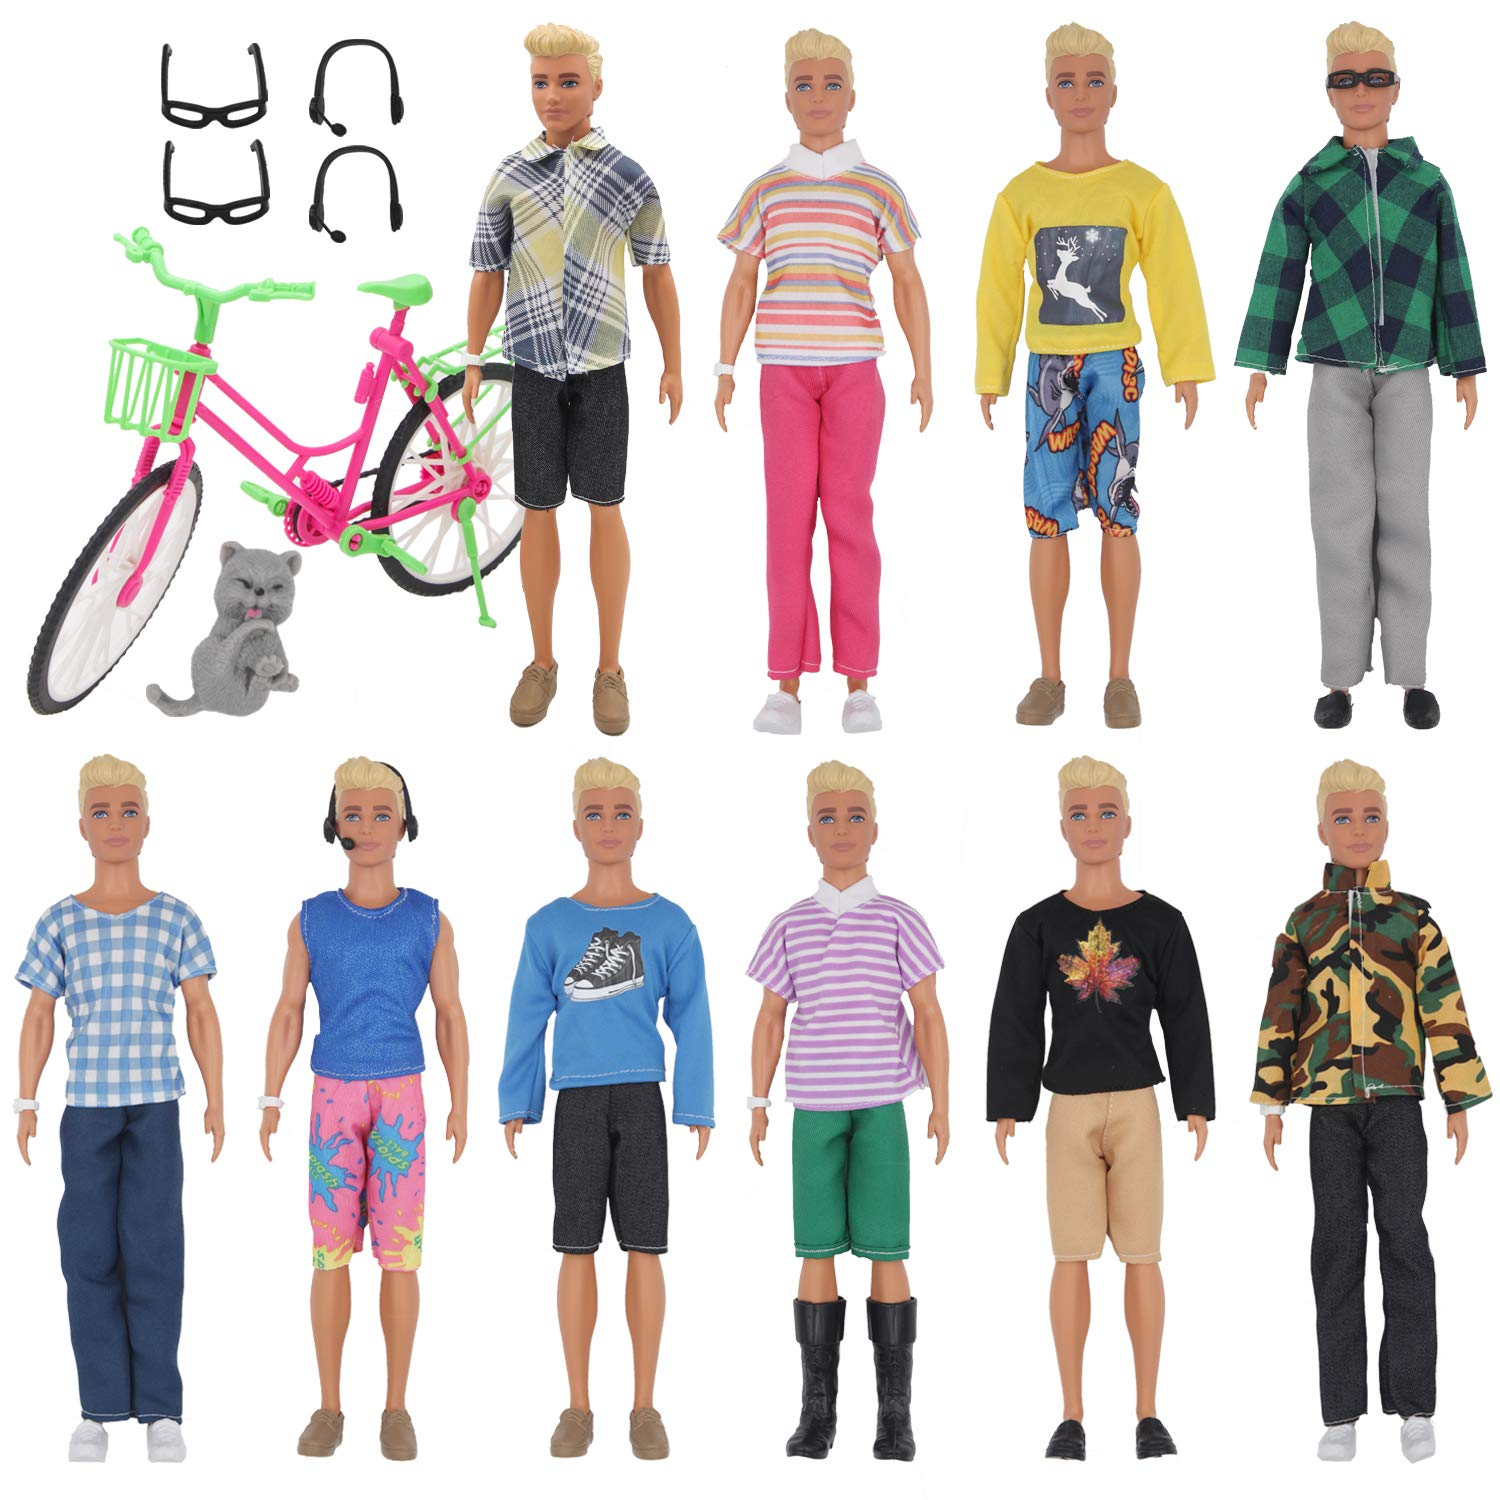 EuTengHao 26 Pcs Doll Clothes and Accessories for Ken Dolls Includes 20 Differen